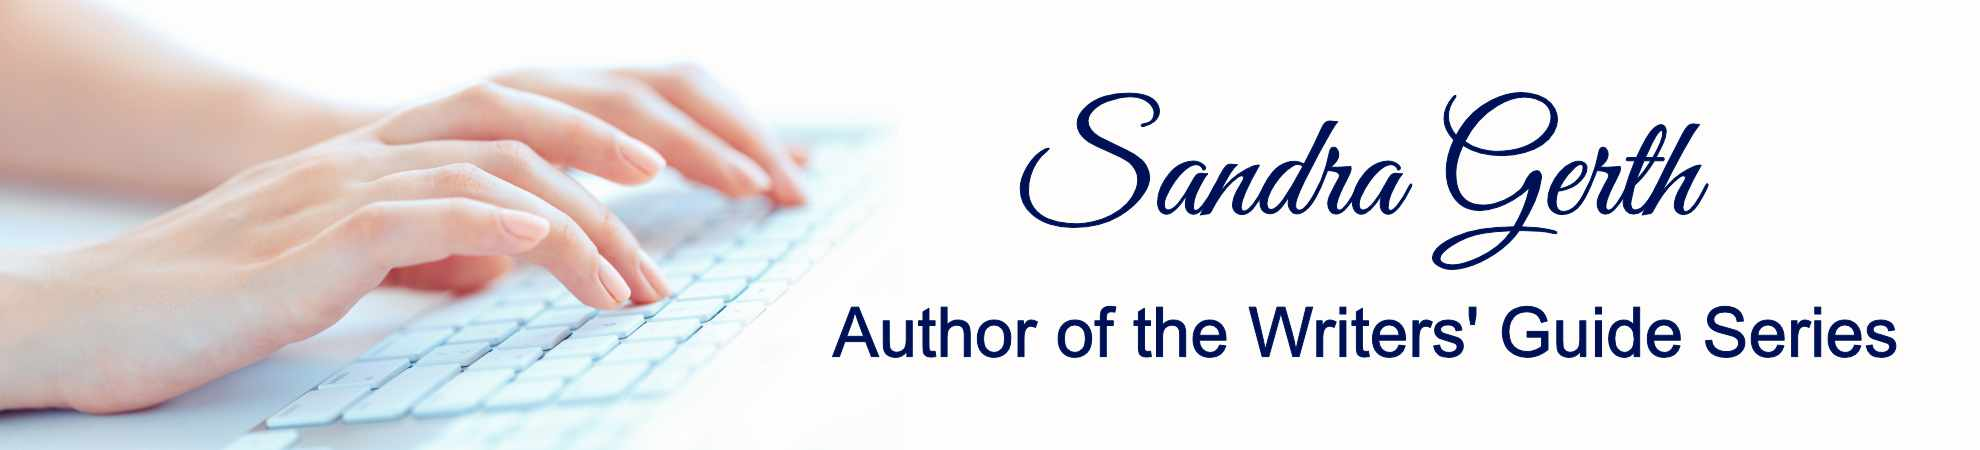 Sandra Gerth - Author of the Writers' Guides Series